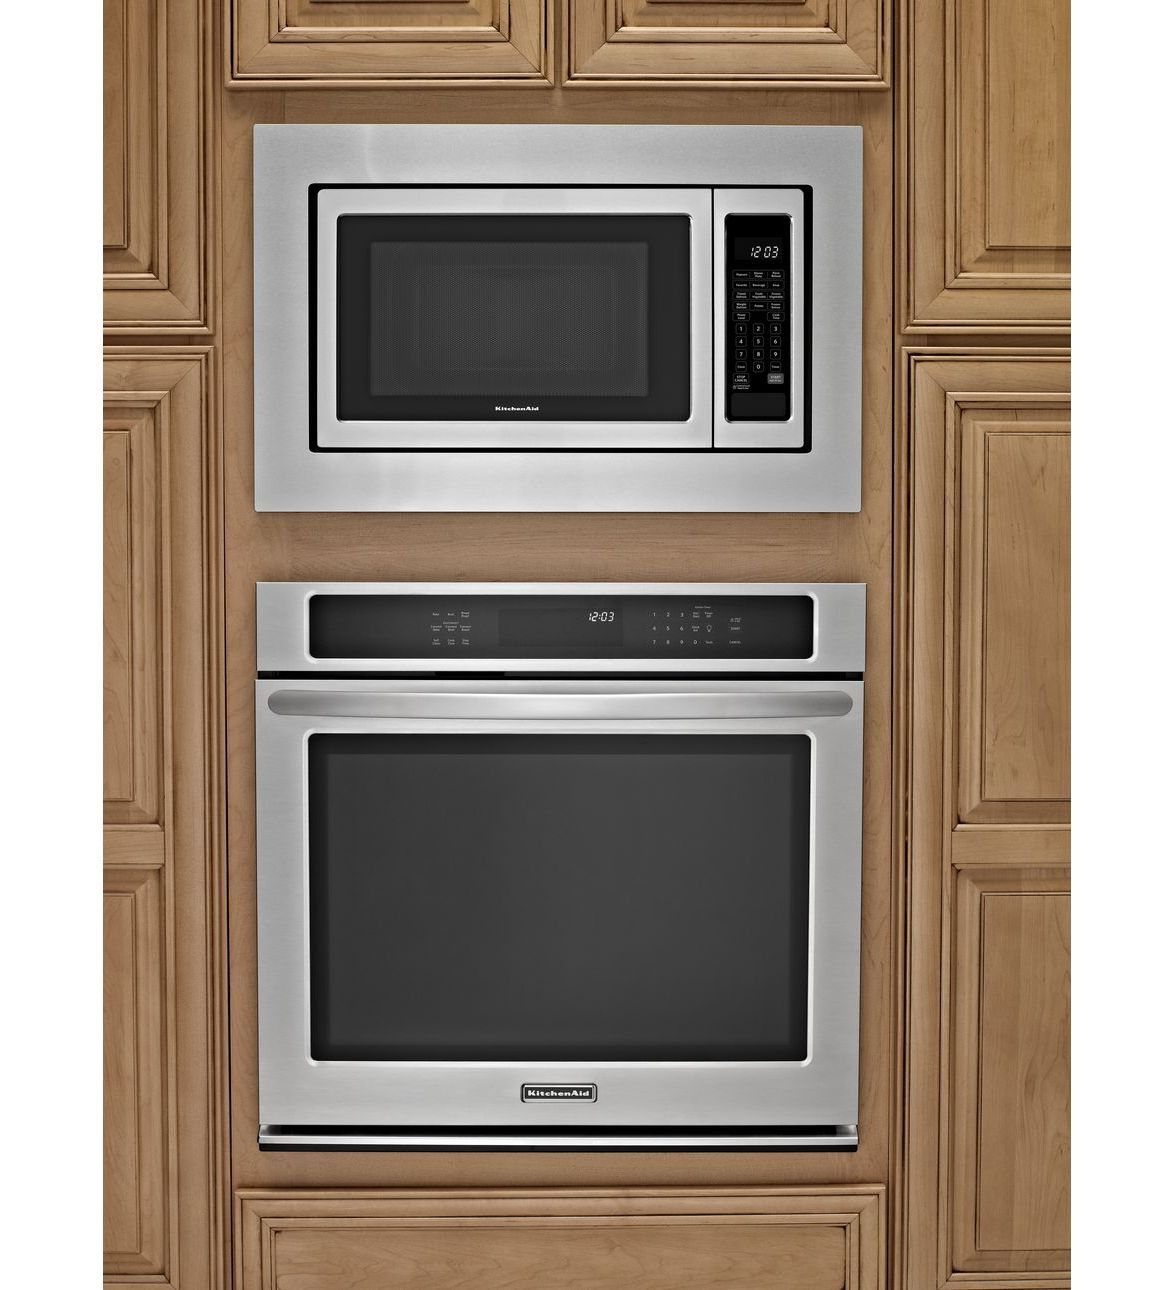 KitchenAid   Countertop Convection Microwave Oven, Architect Series II,  Stainless Steel       Home Depot Canada